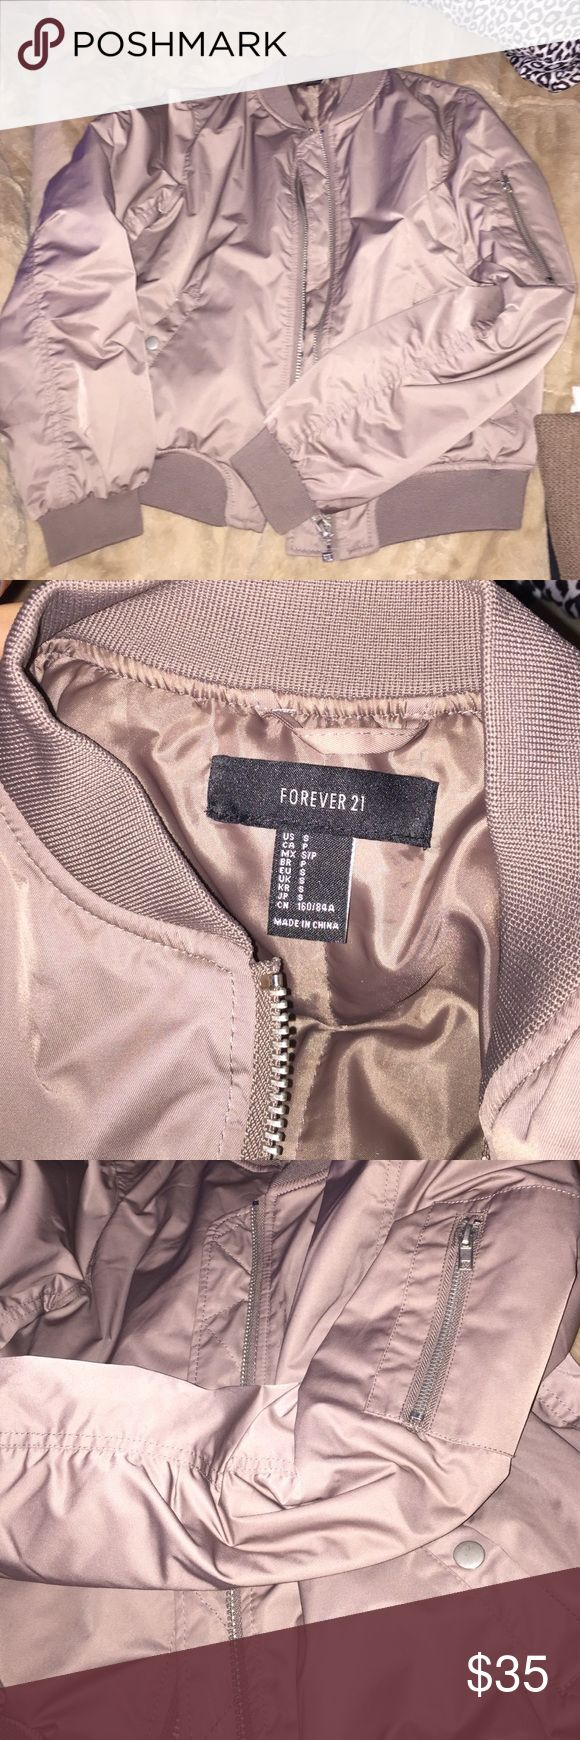 Forever21 tan combat jacket Forever21 tan combat jacket; size small. worn a handful of times, excellent condition. has pockets and a zipper on the arm as pictured. no trades Forever 21 Jackets & Coats